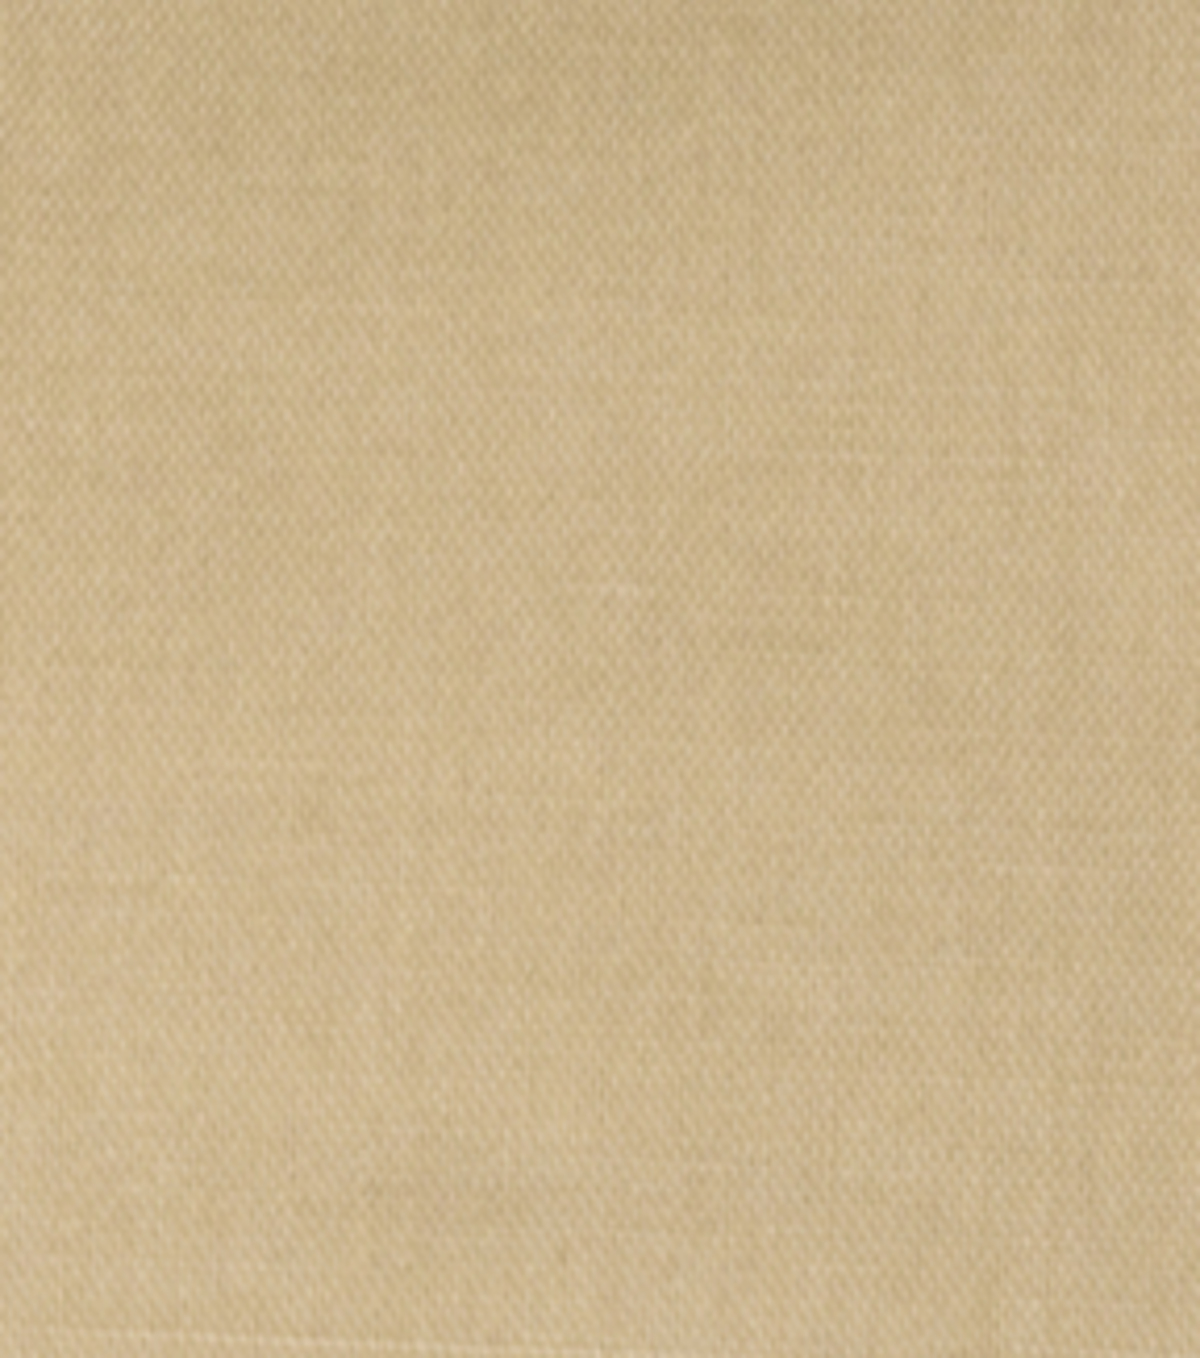 Home Decor 8\u0022x8\u0022 Fabric Swatch-Signature Series Legacy Cotton Birch